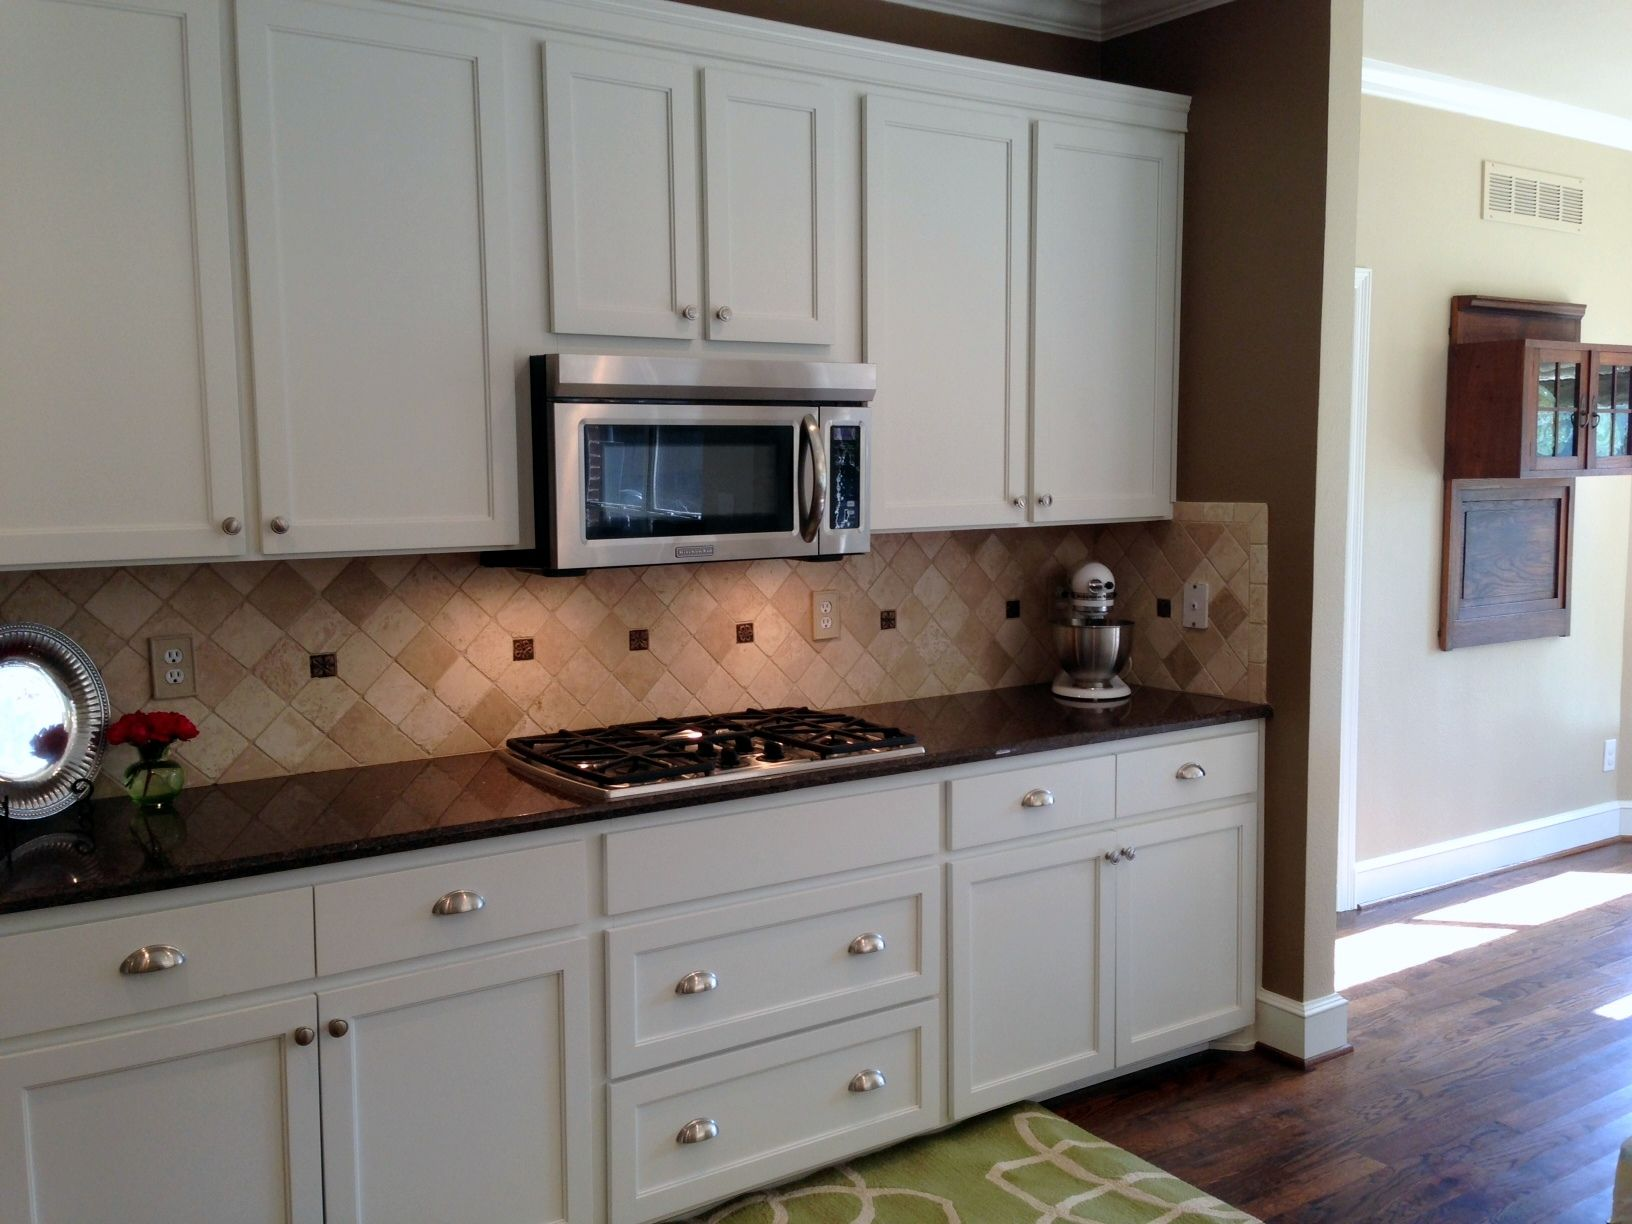 Kitchen Cabinets Shaker Style sherwin williams alabaster cabinet | kitchen remodel: before